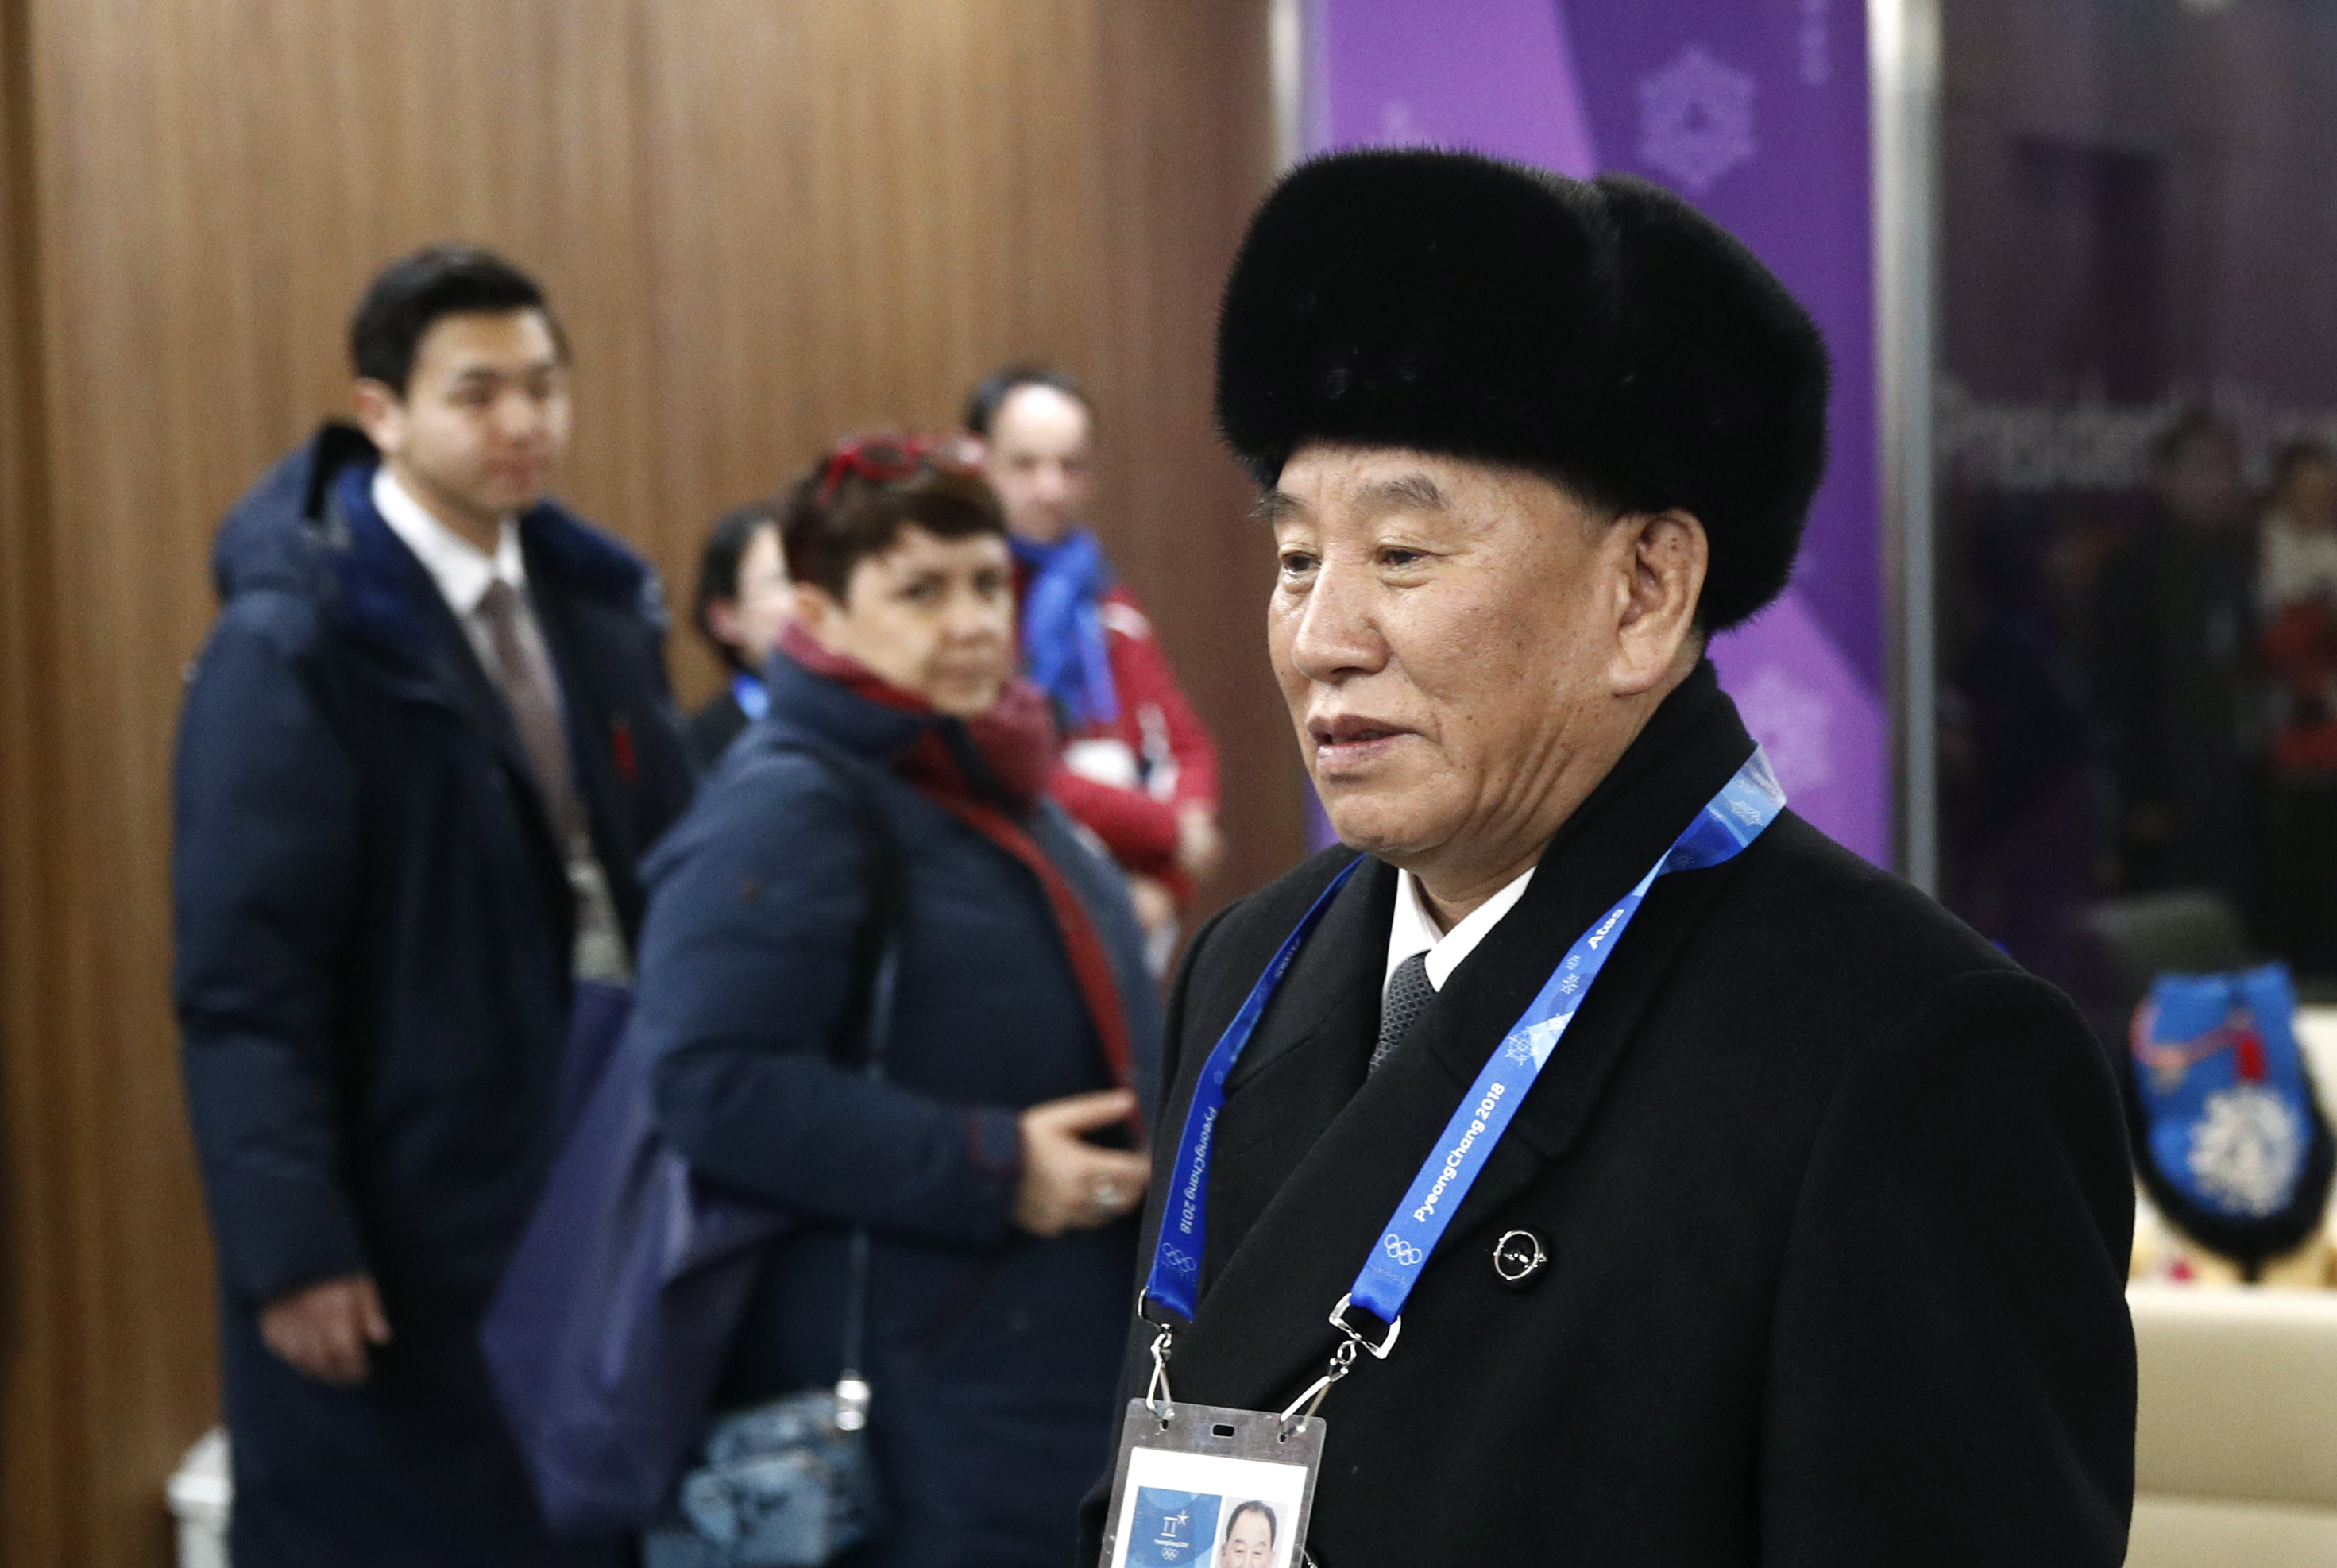 Kim Yong Chol, vice chairman of North Korea's ruling Workers' Party Central Committee, at the closing ceremony of the Pyeongchang 2018 Winter Olympic Games  on Feb. 25, 2018.